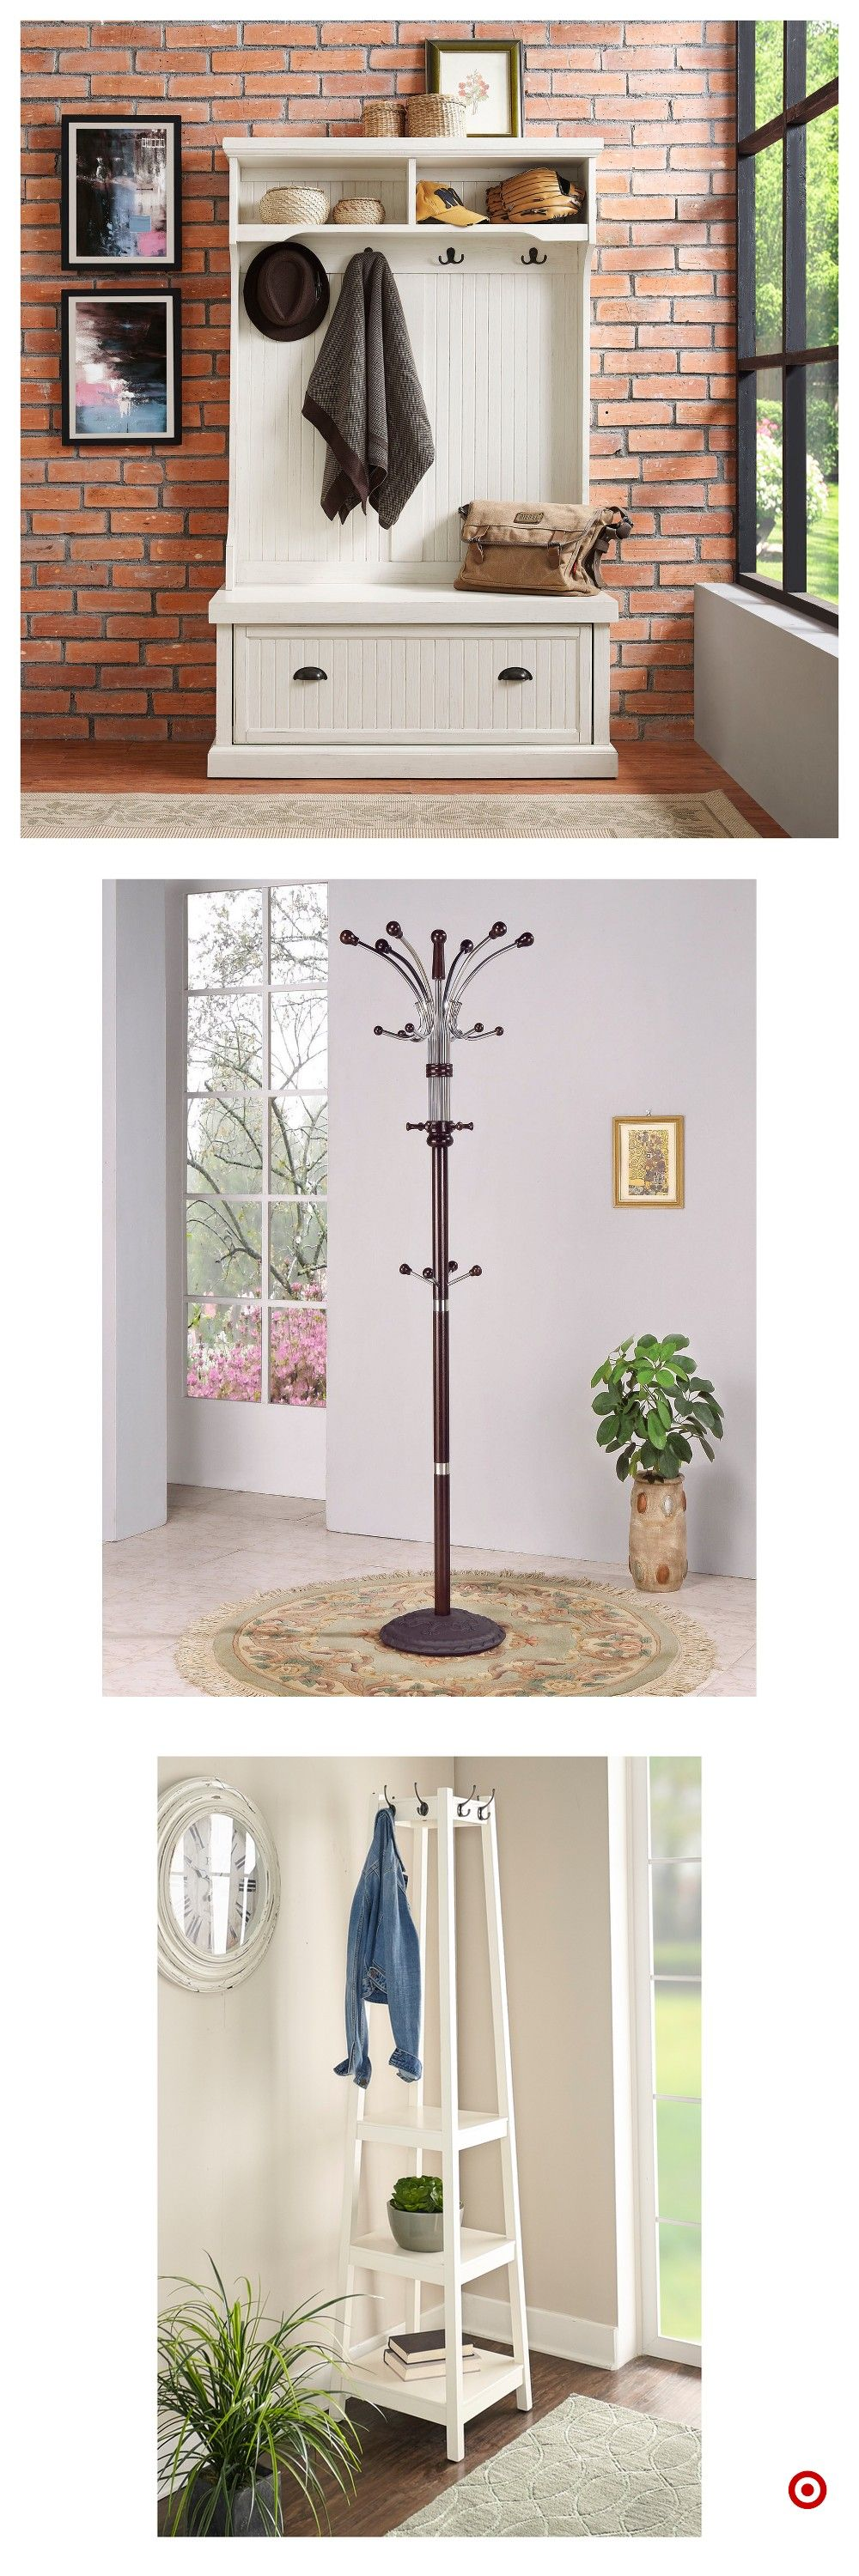 Shop Target For Freestanding Coat Rack You Will Love At Great Low